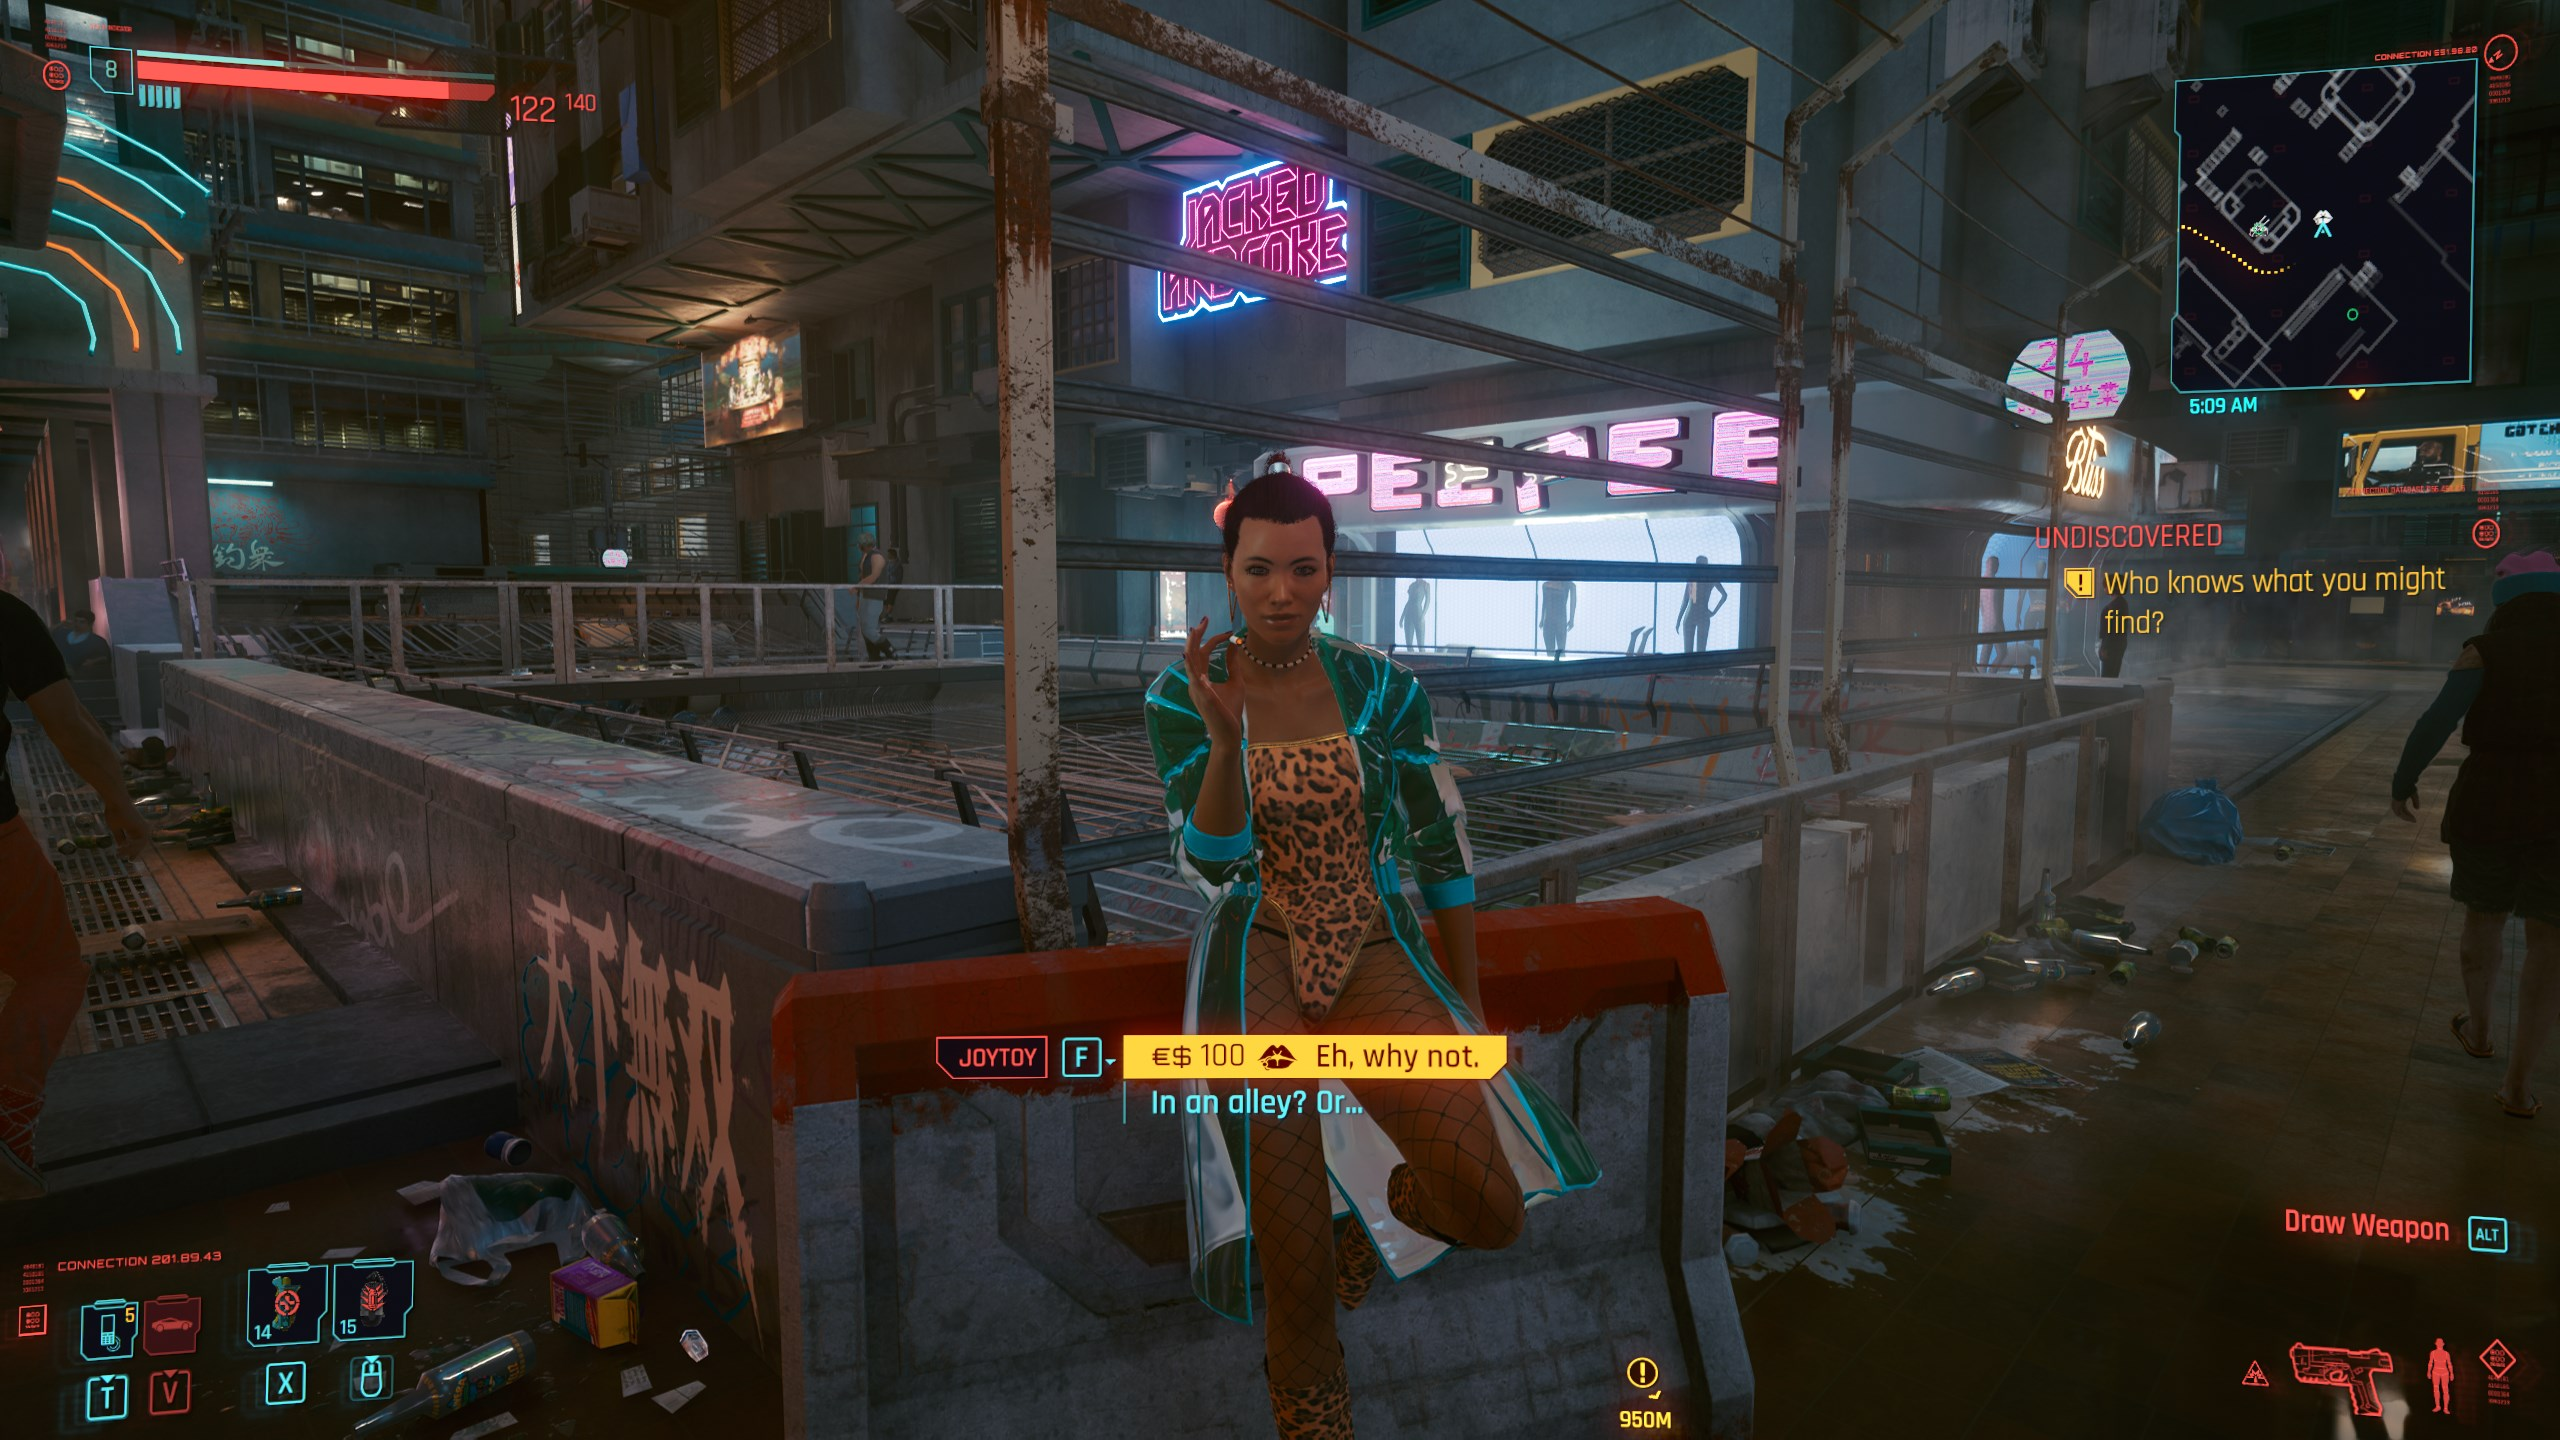 Cyberpunk 2077 Update 1.03 Patch Notes